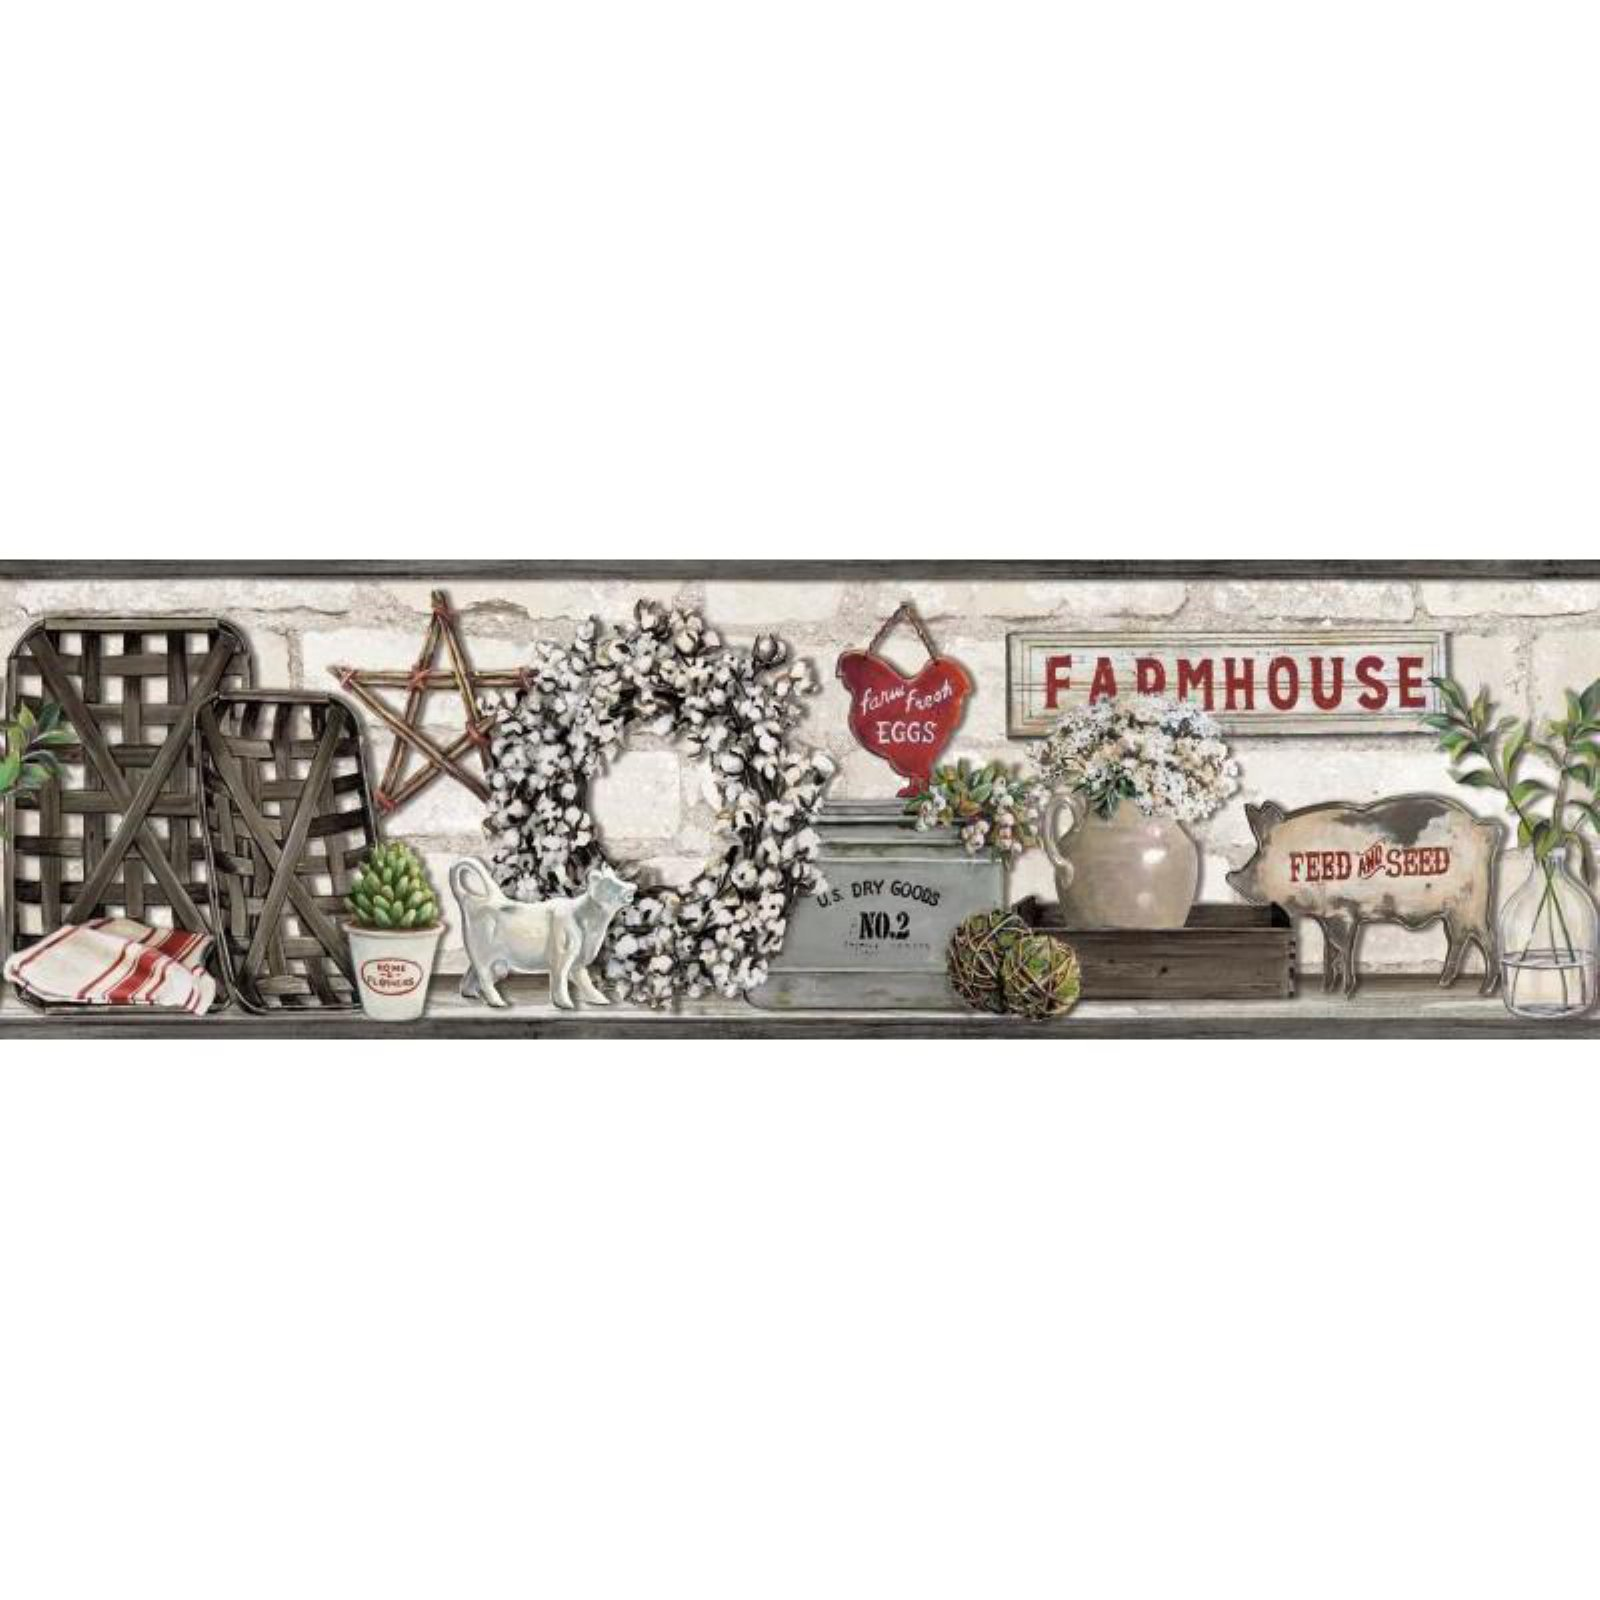 Farmhouse Shelf Wallpaper Border   Walmartcom 1600x1600